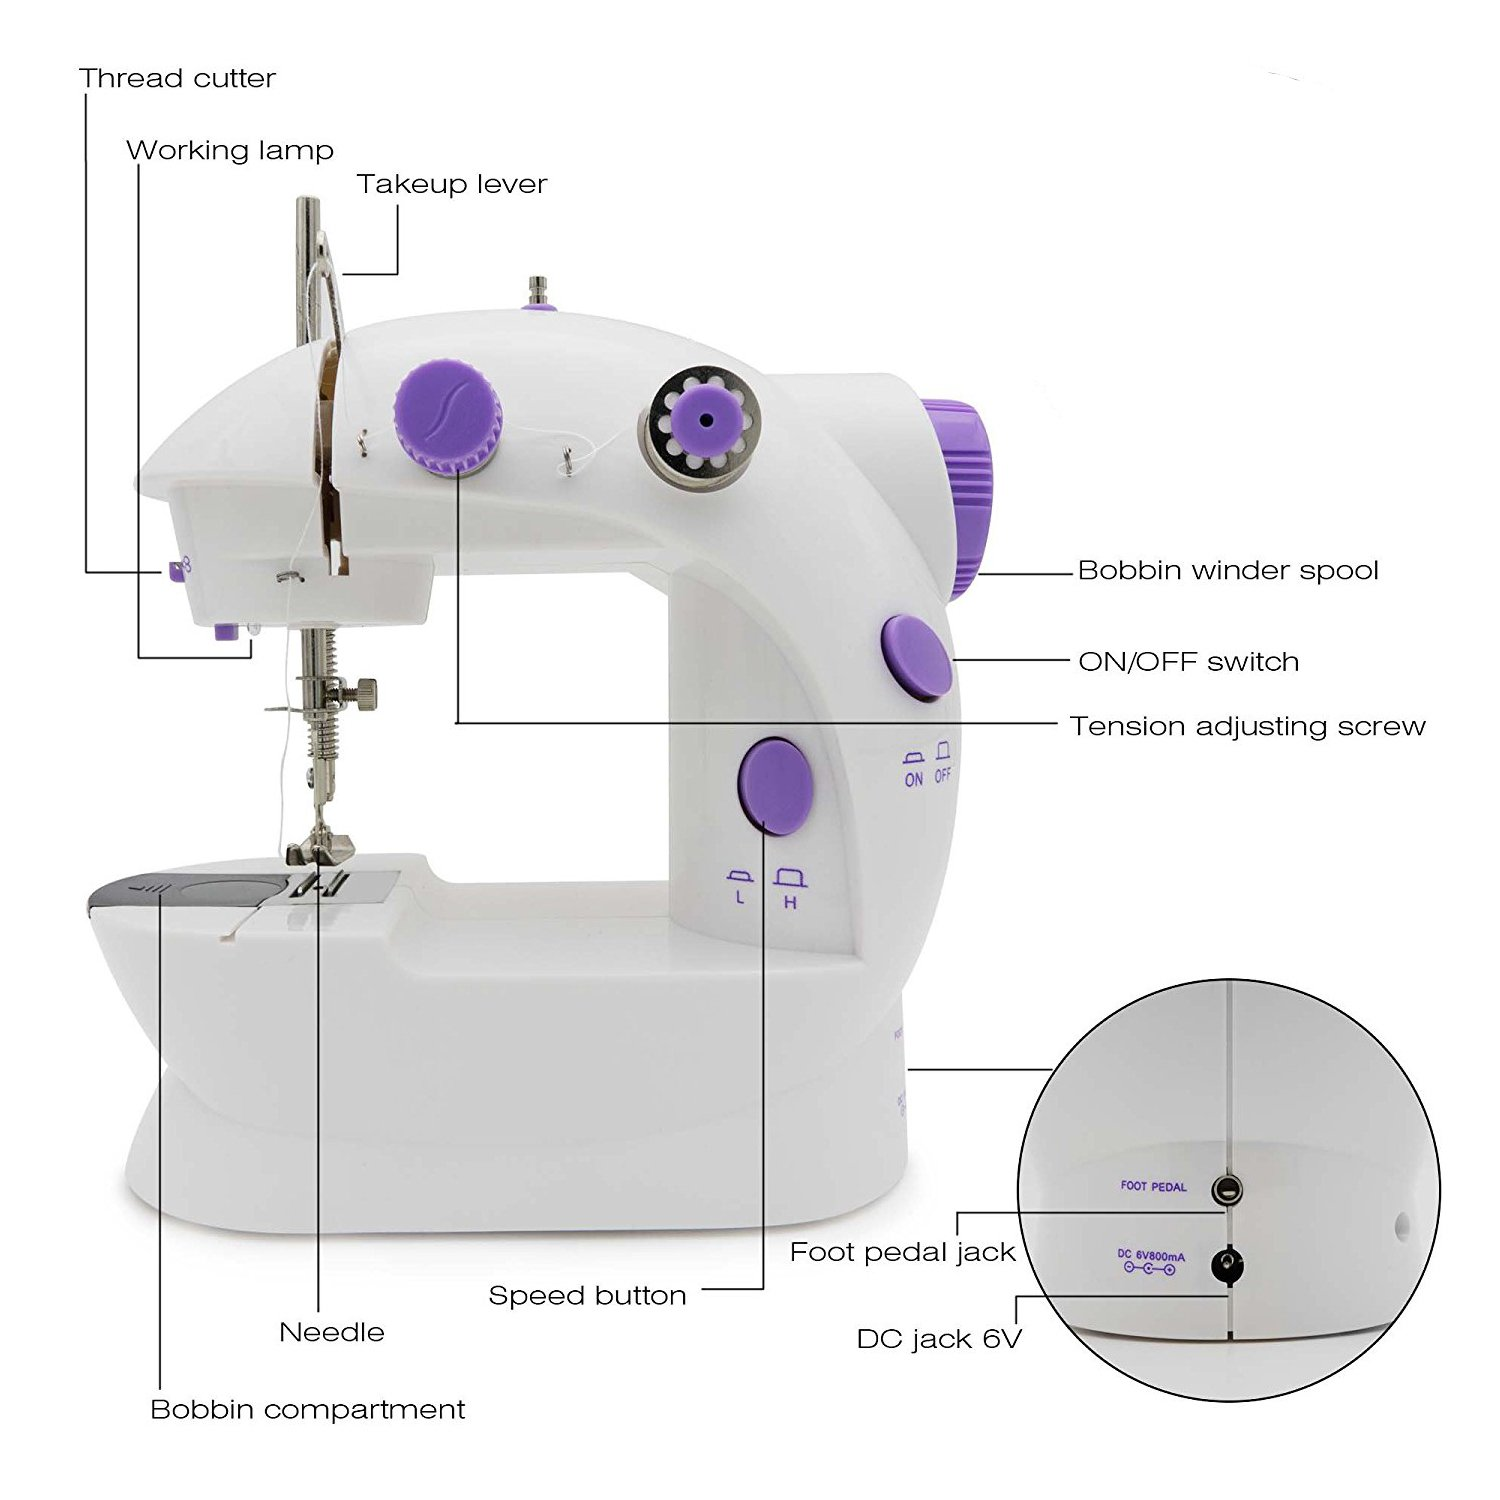 Mini Portable Sewing Machine - Zikken Double Speed Portable Sewing with Light & Cutter, Foot Pedal & Hand Switch 2 methods for Household: Amazon.es: Hogar